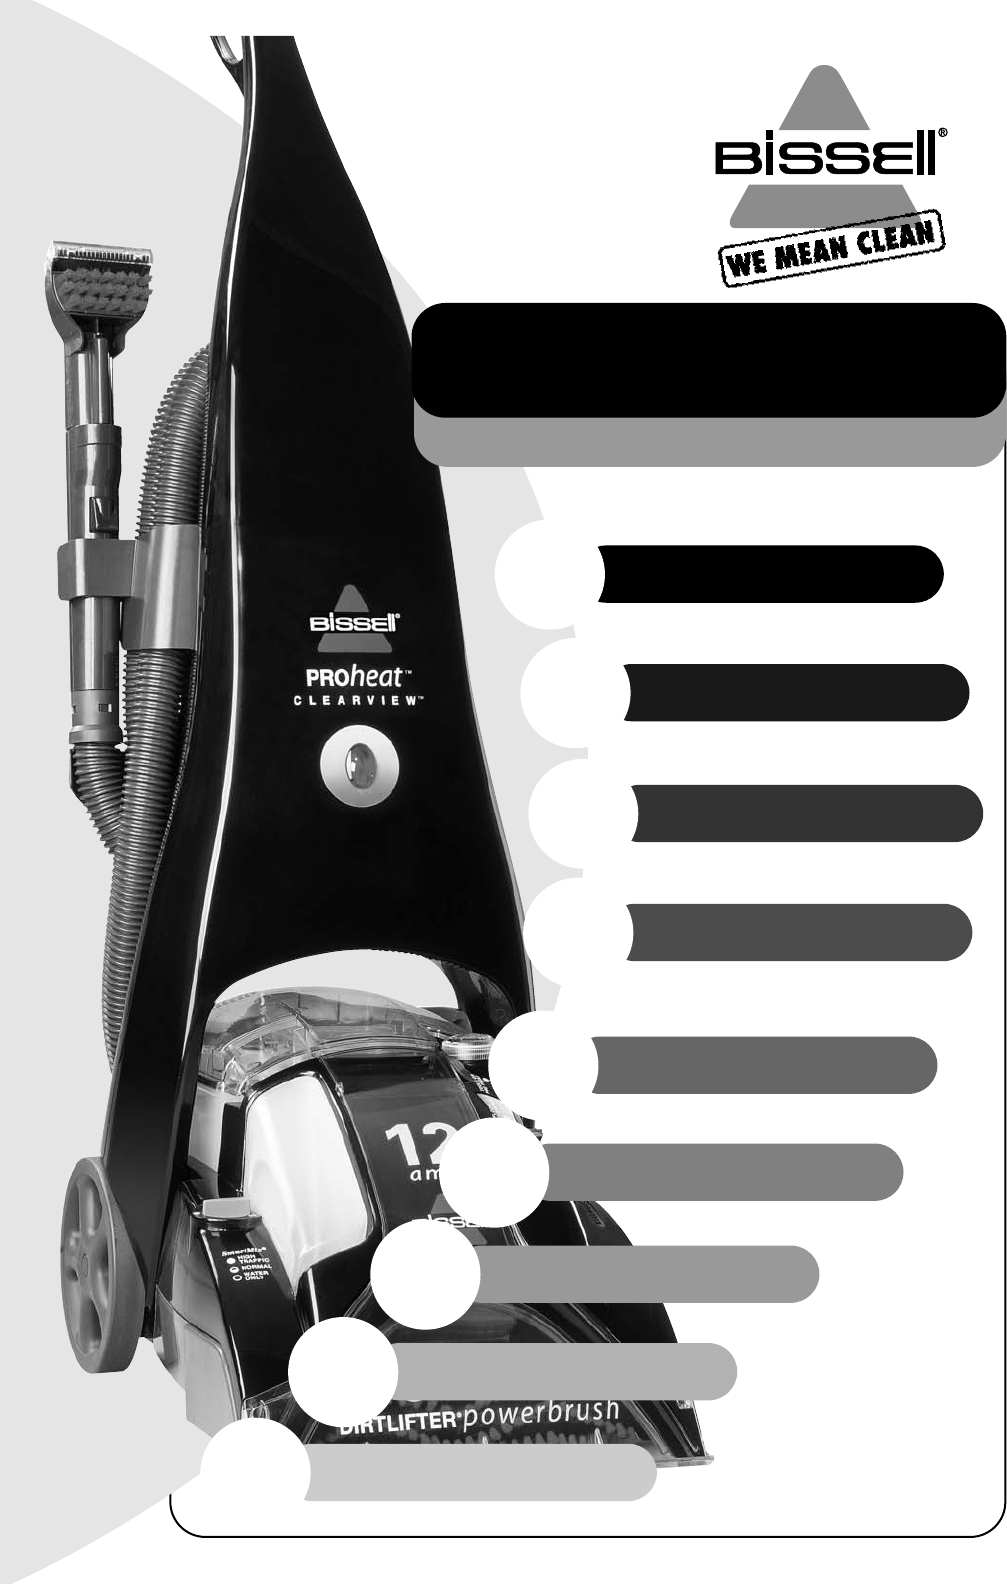 bissell carpet cleaner 8905 user guide manualsonline com rh kitchen manualsonline com Bissell User Manual Bissell PowerForce Vacuum Manual